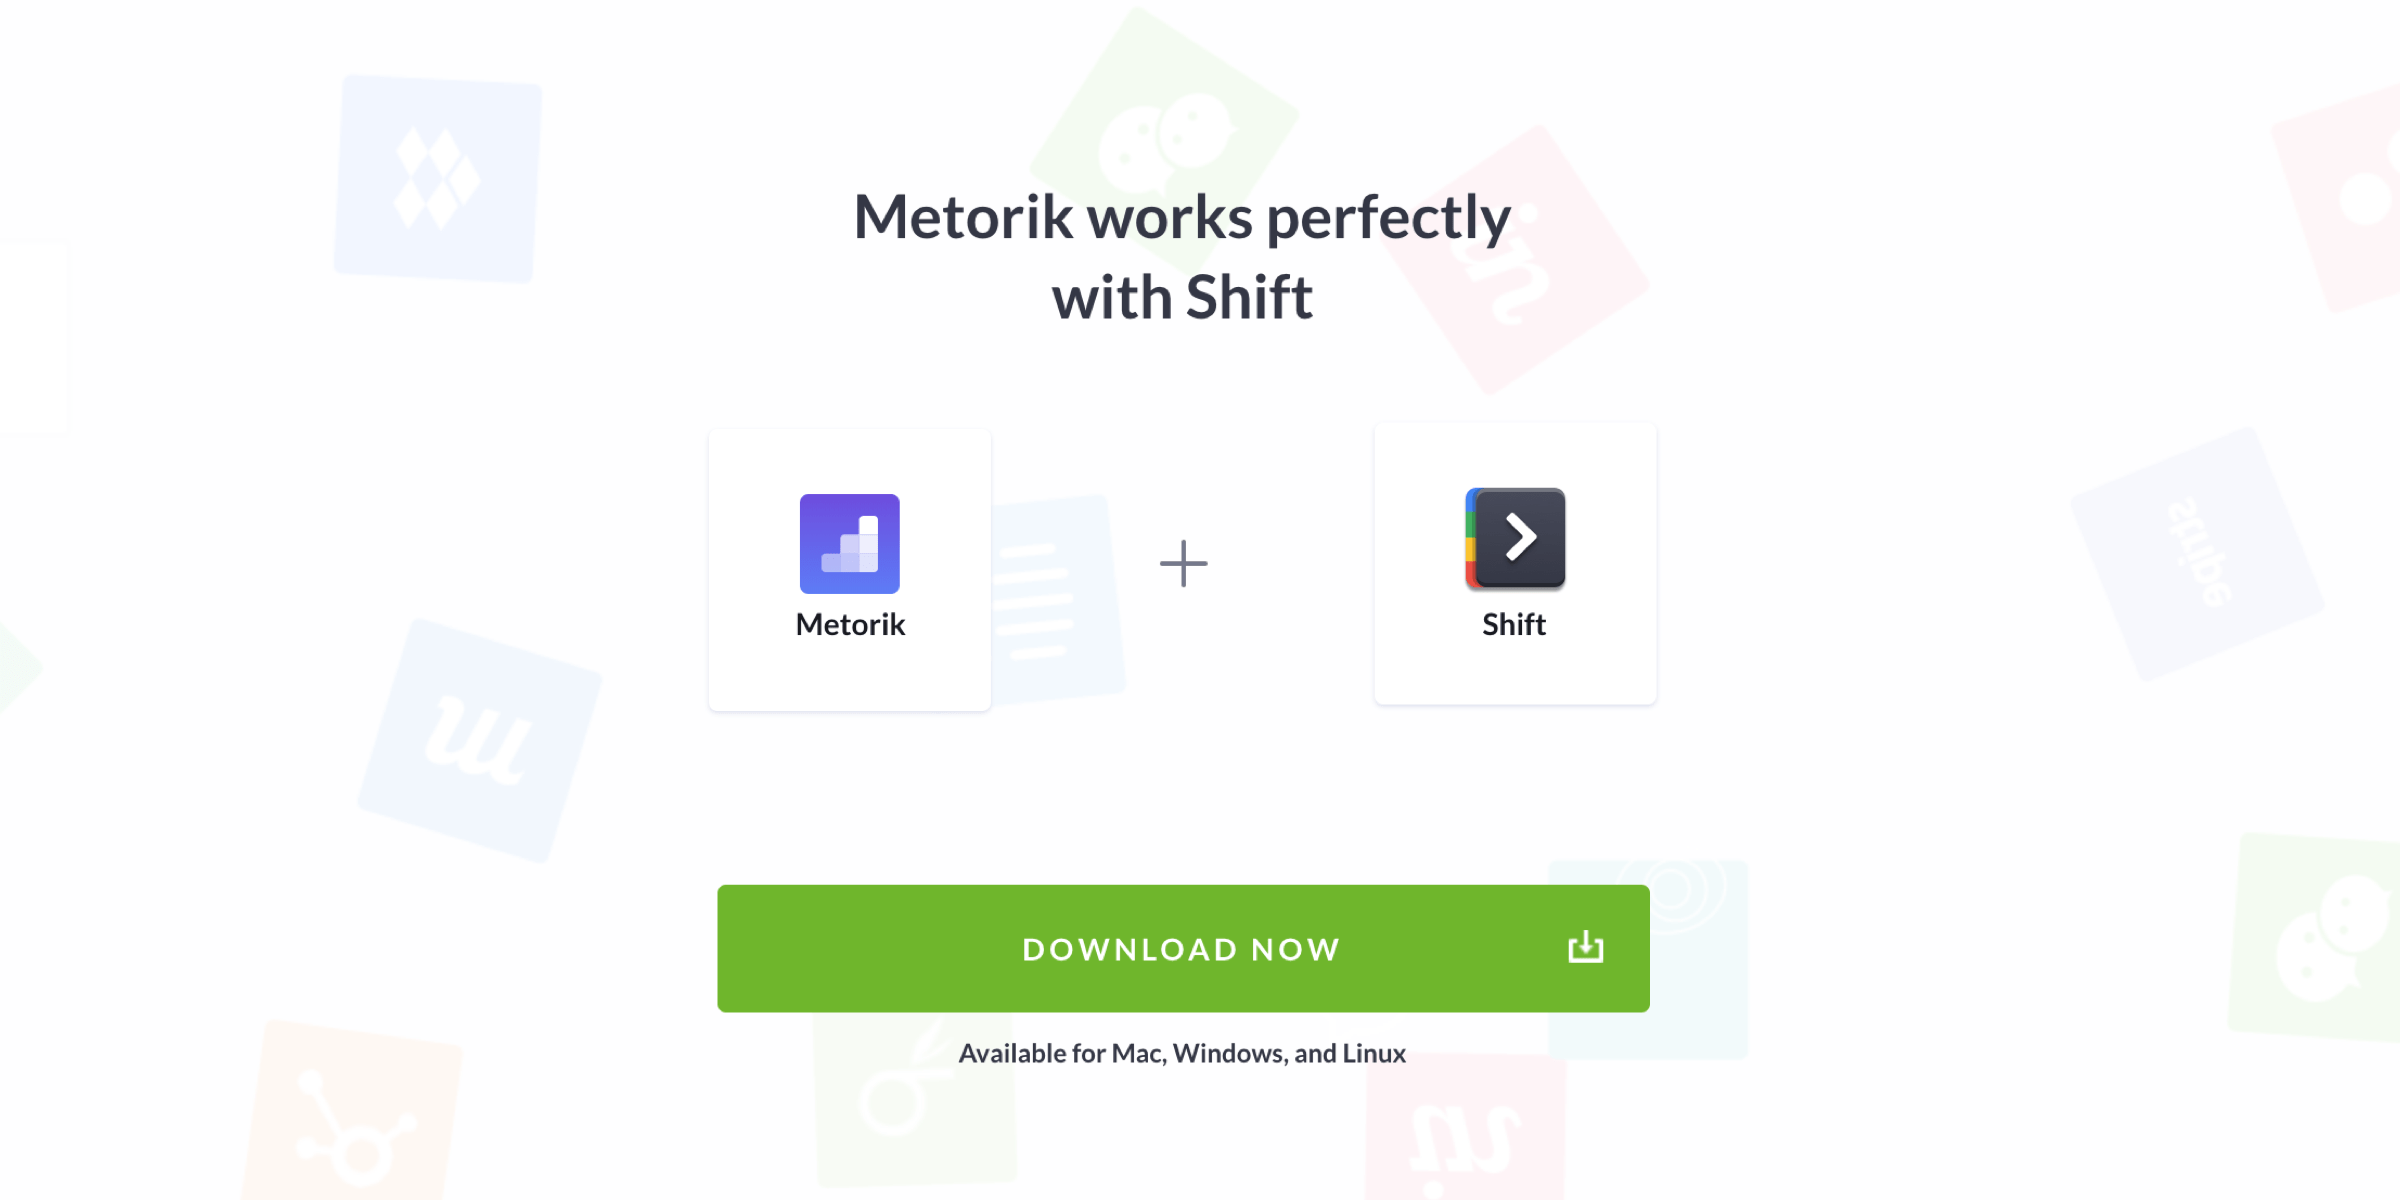 Metorik and Shift